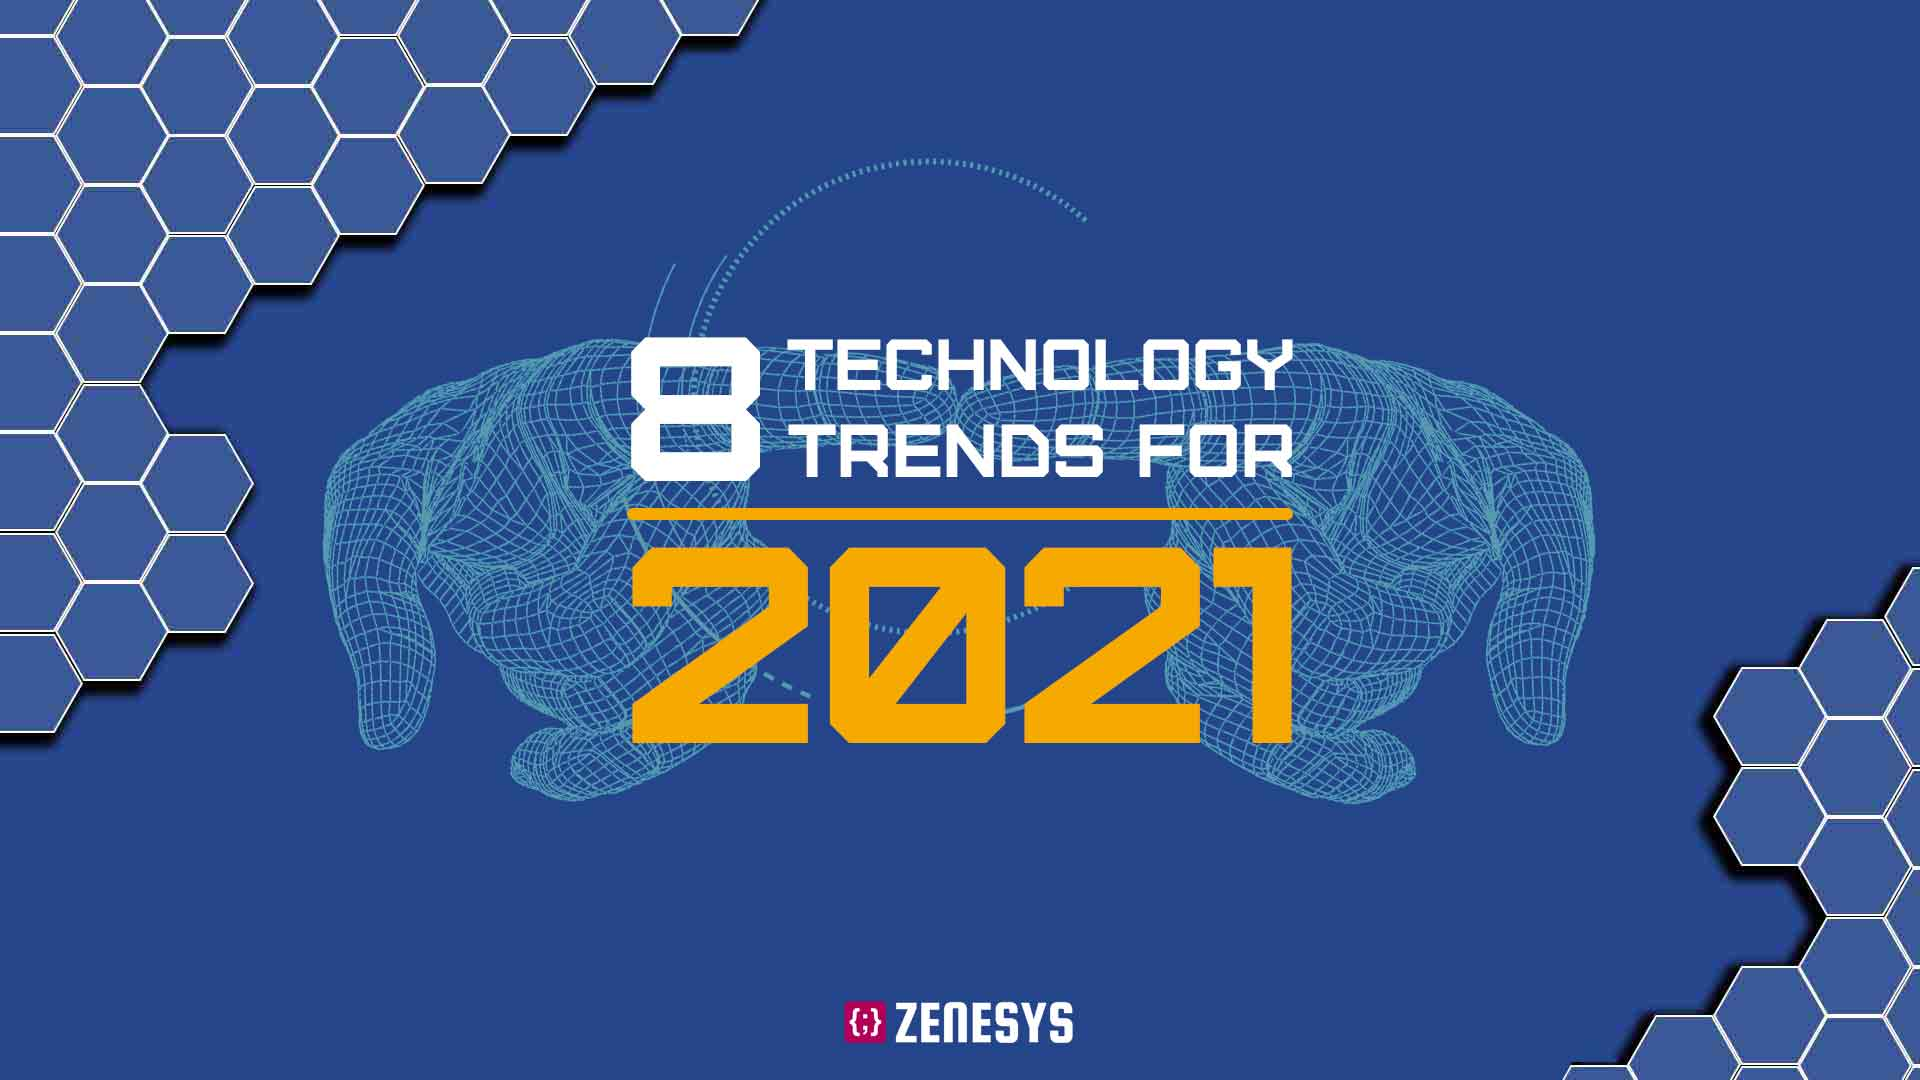 8 Technology Trends For 2021